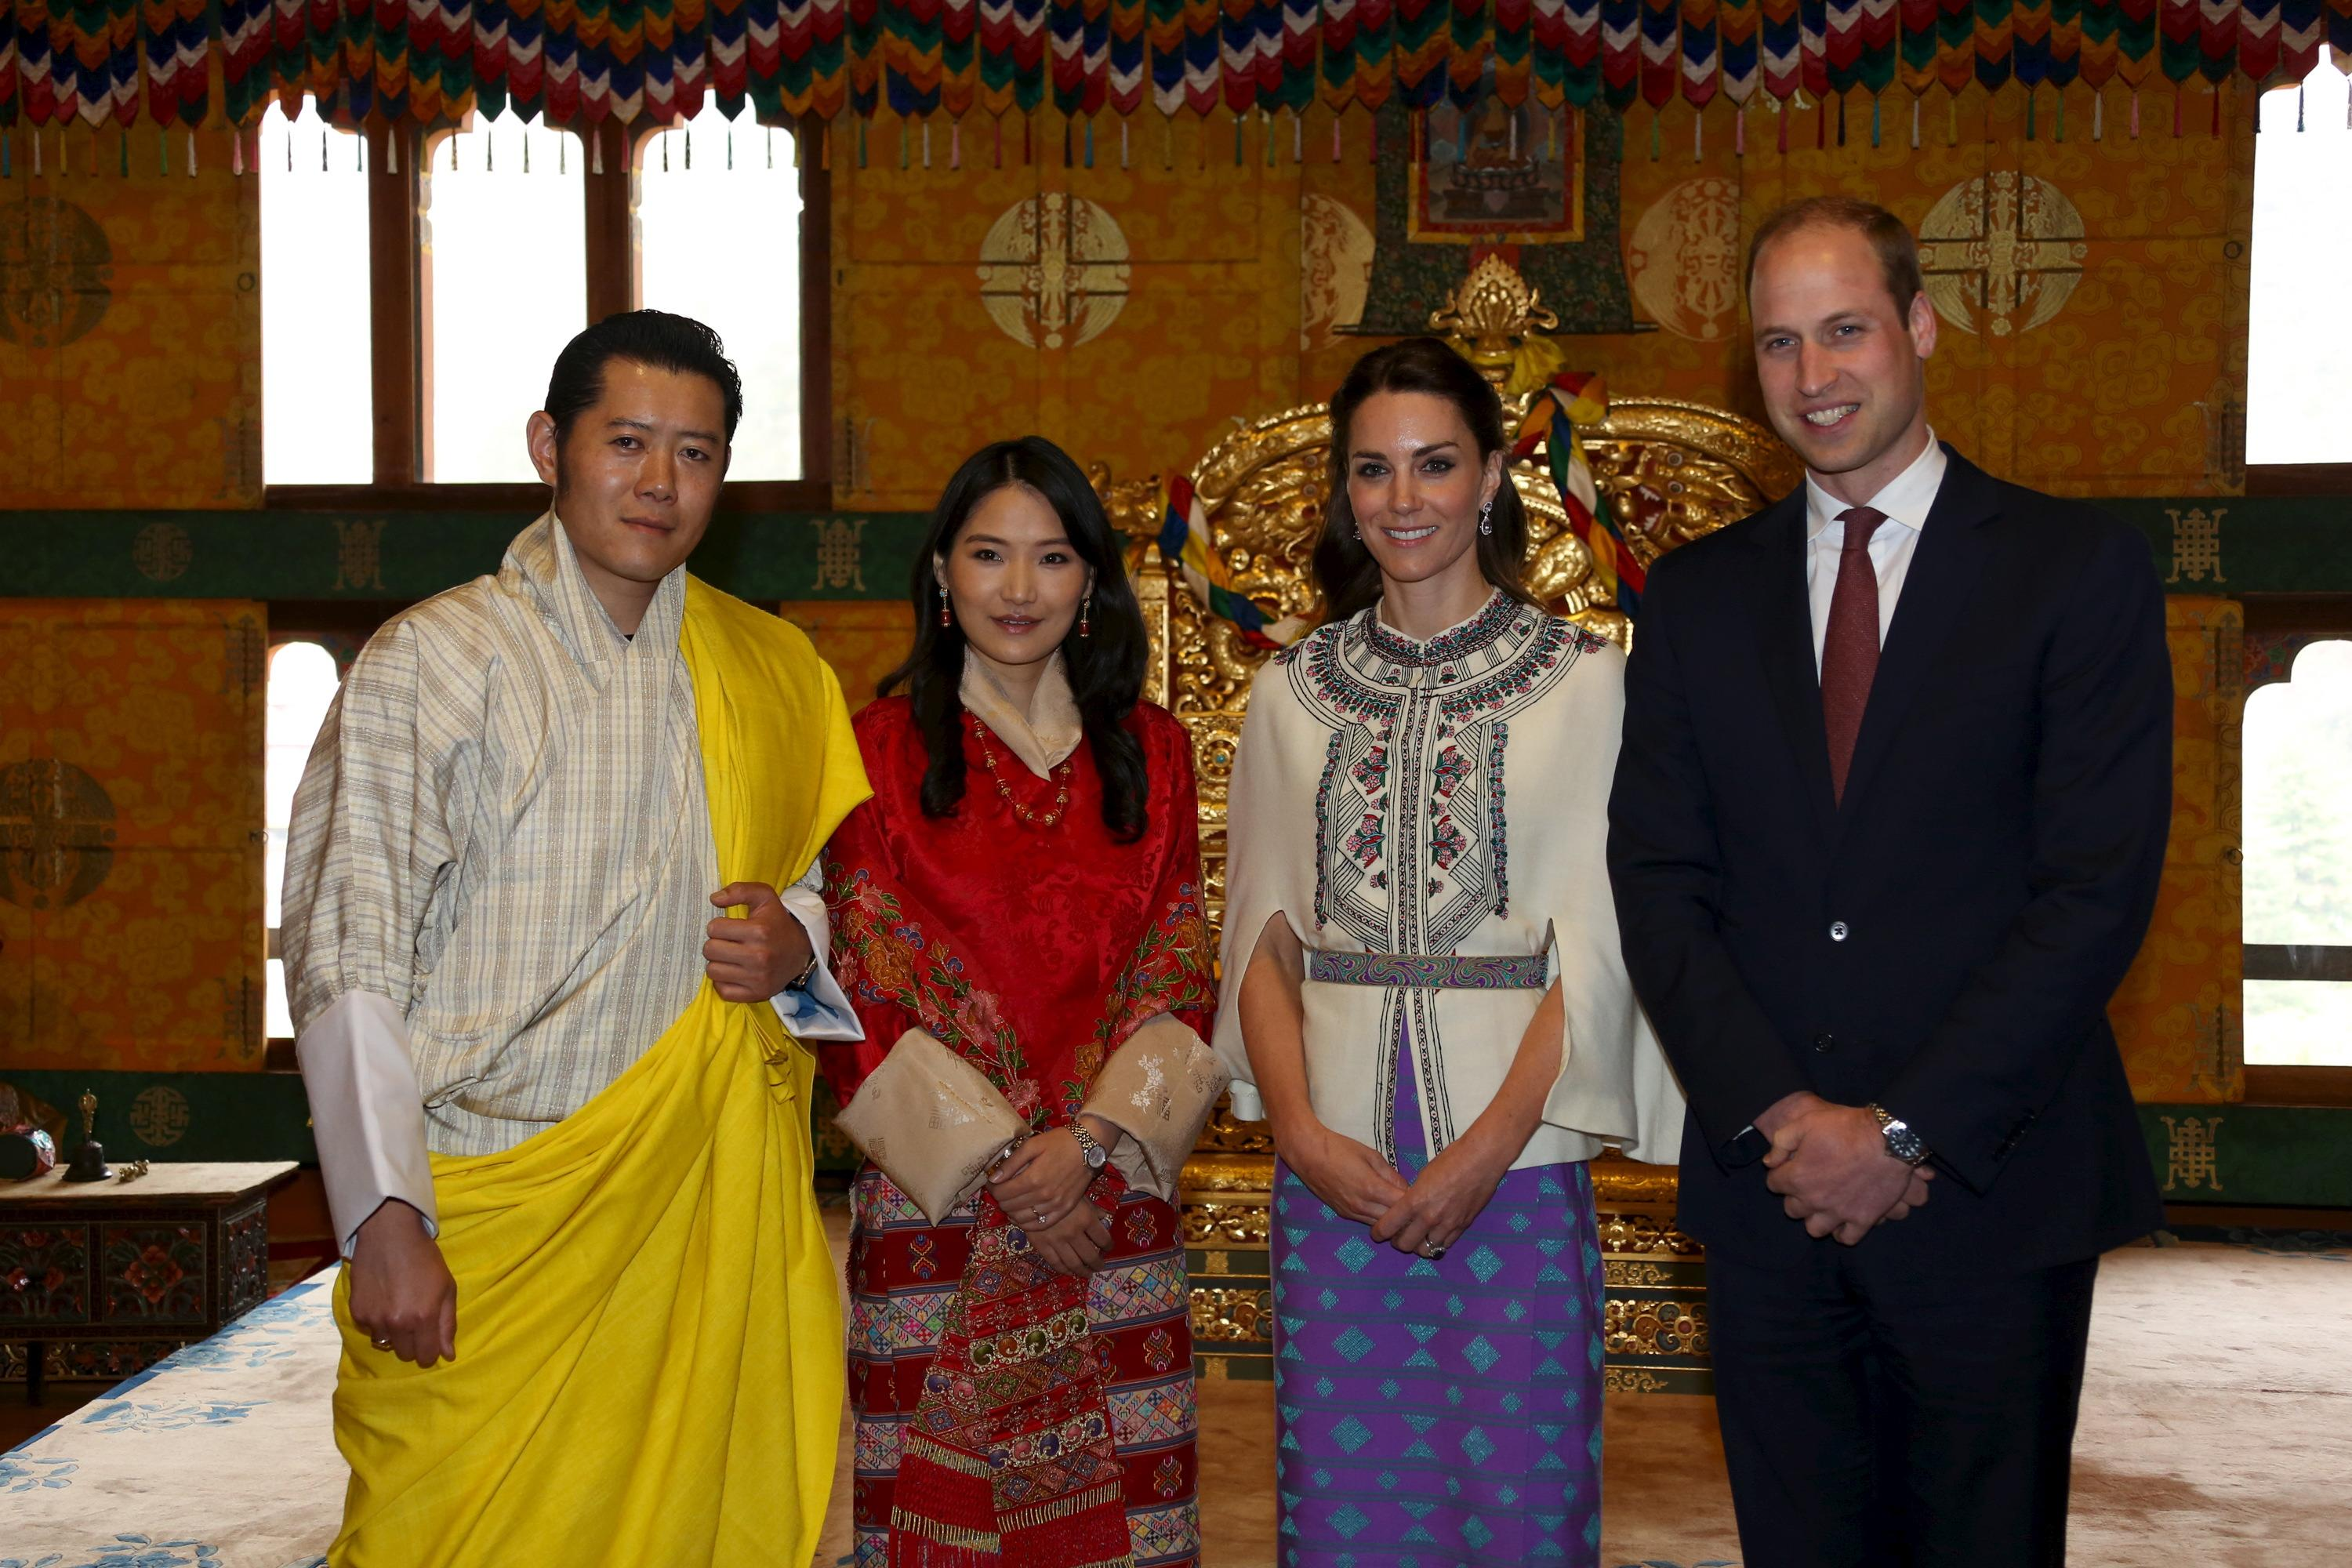 Bhutan's King Jigme and wife Queen Jetsun with Prince William and Kate Middleton